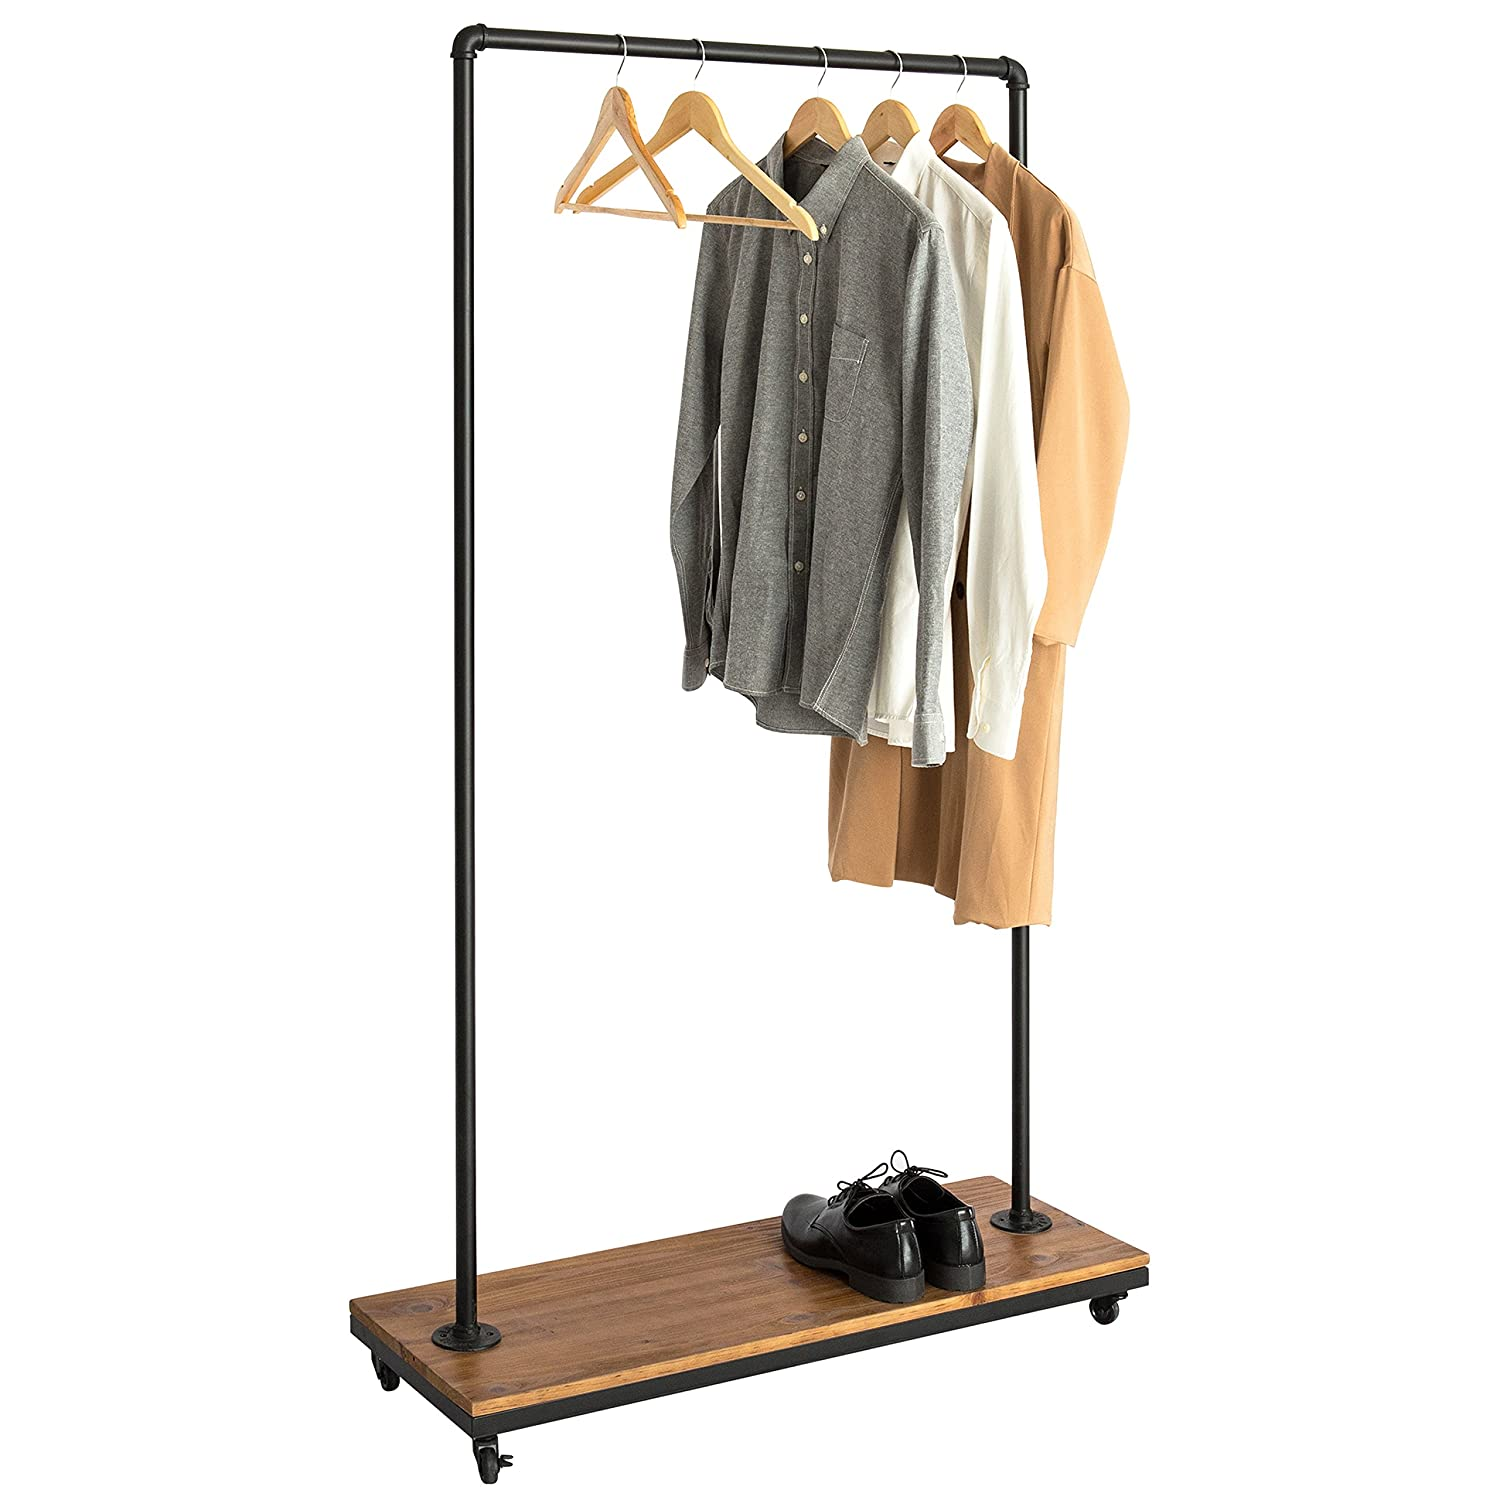 a black rack industrial img to the room solution less easy hanging closet pipe diy clothing